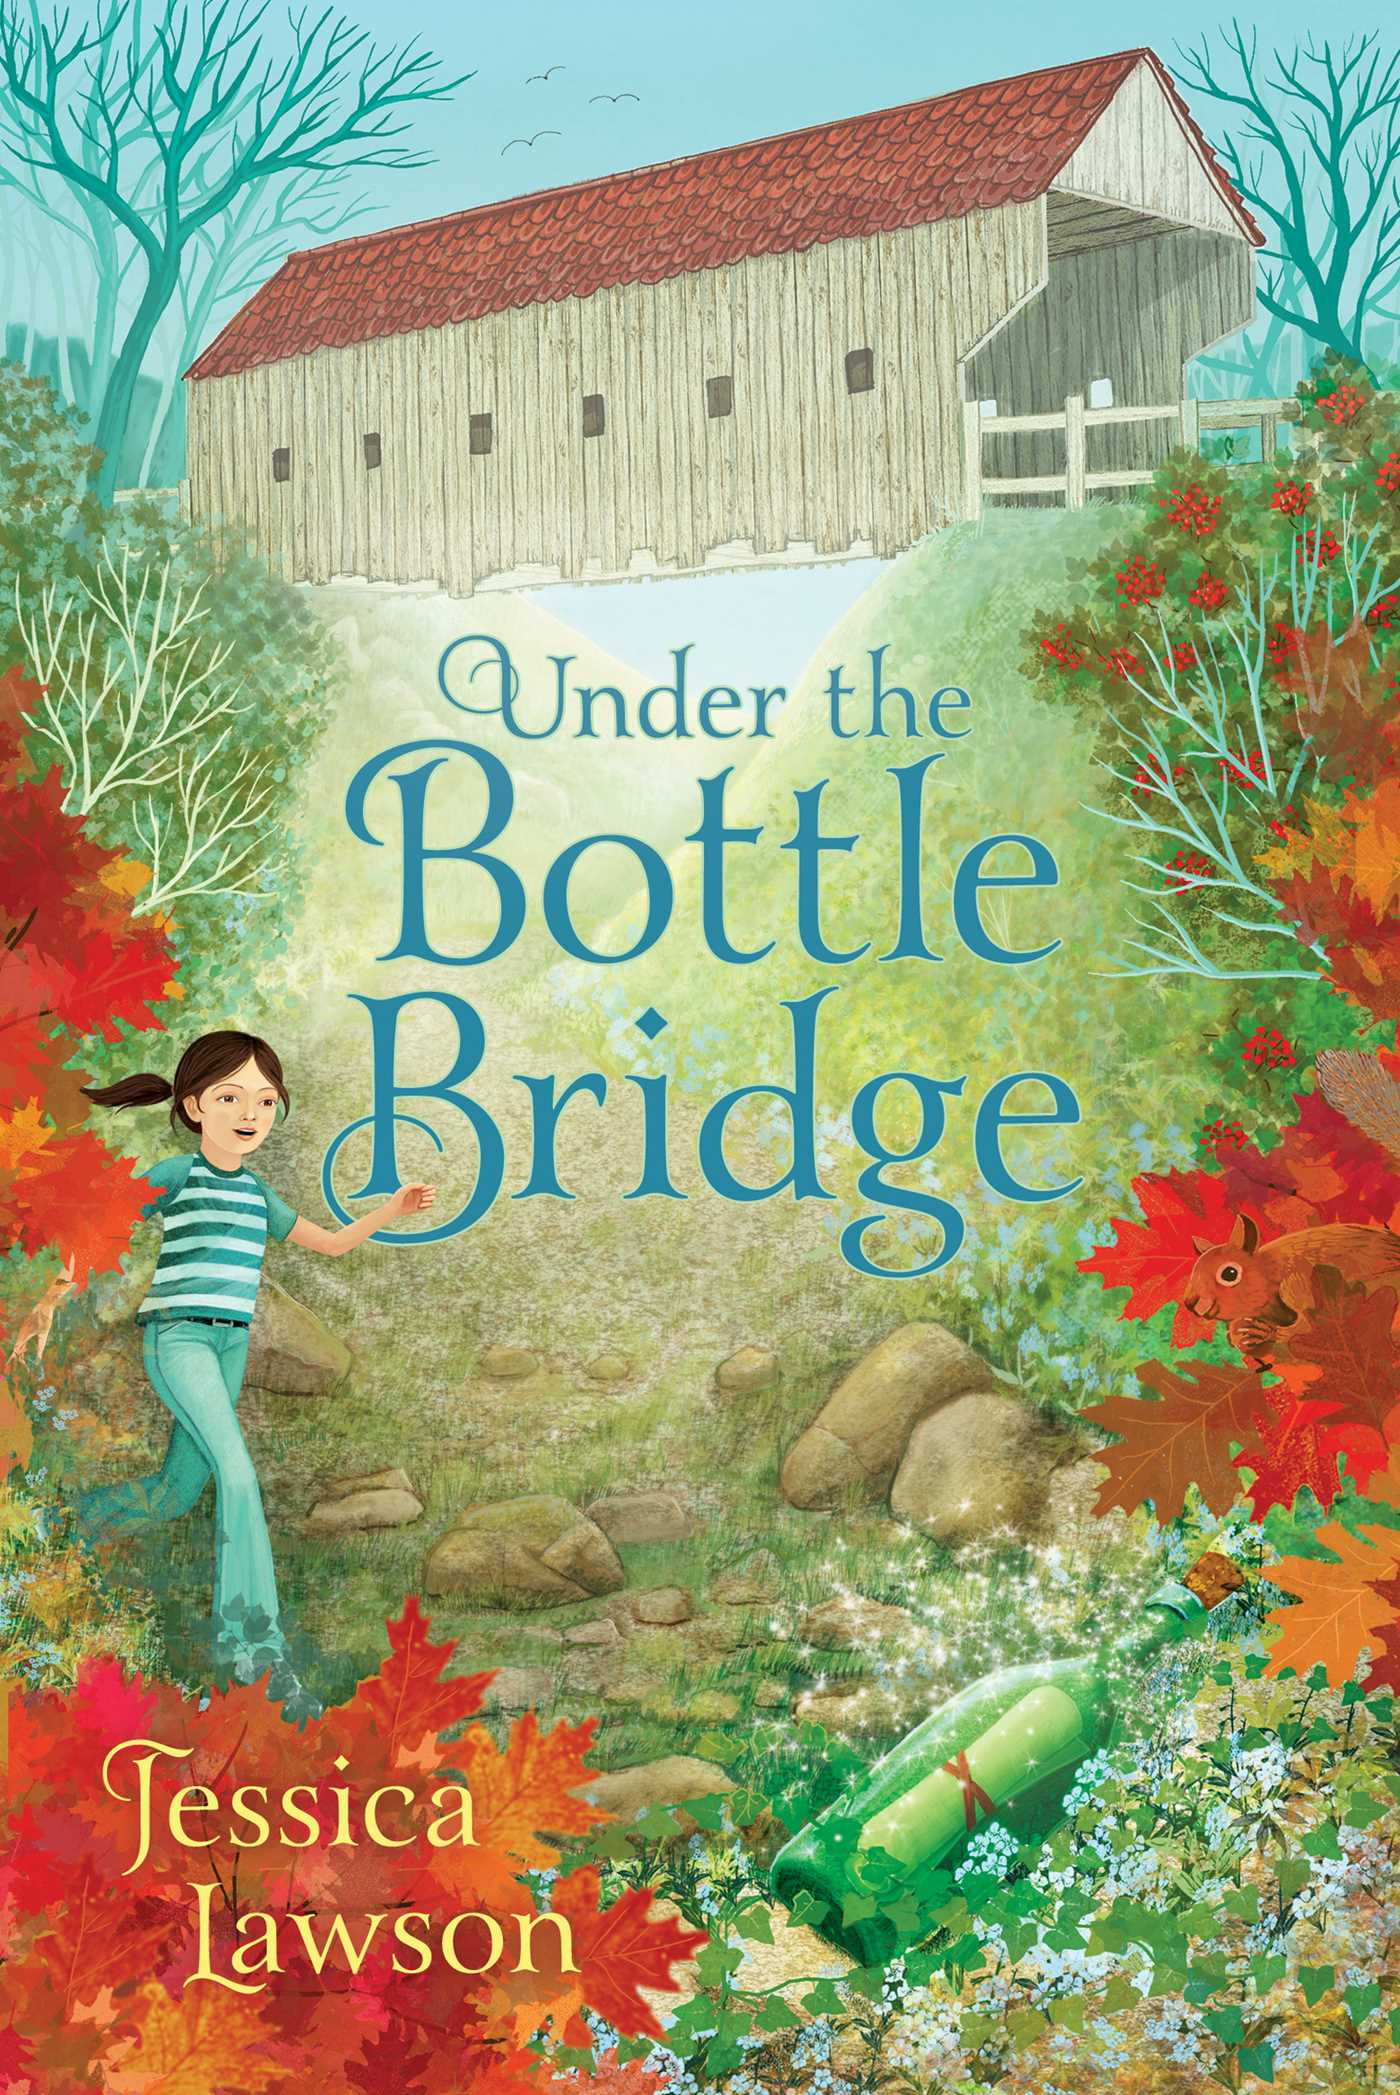 Under the bottle bridge 9781481448420 hr